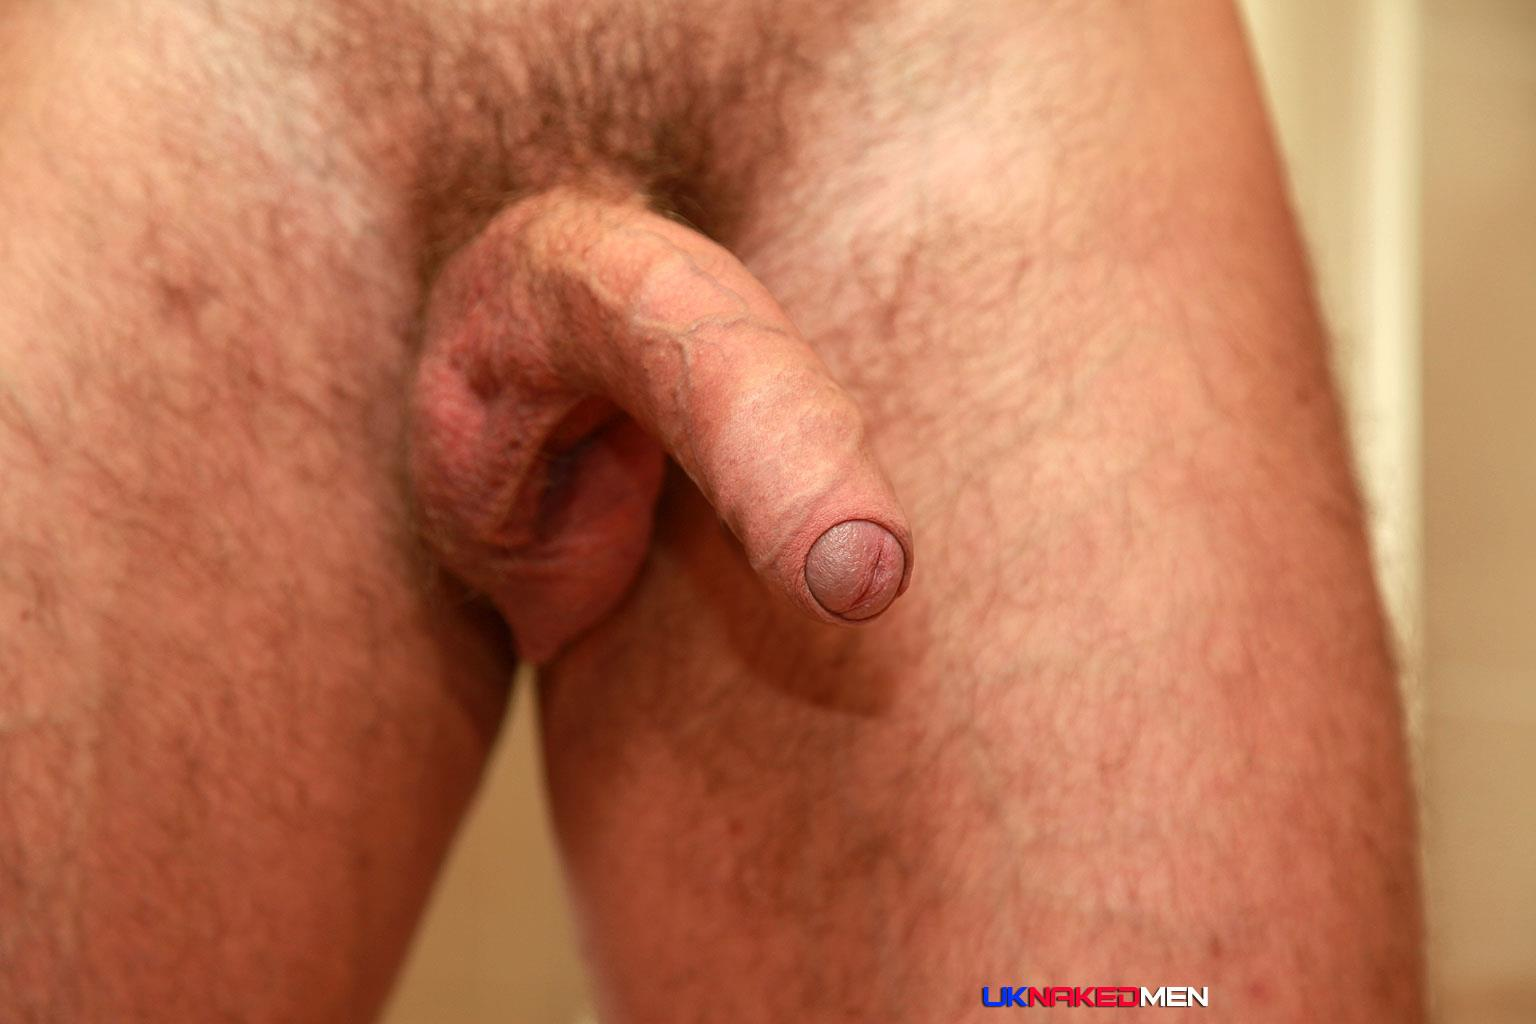 UK-Naked-Men-AJ-Alexander-and-Patryk-Jankowski-Big-Uncut-Cock-Bareback-Sex-Amateur-Gay-Porn-12 Hairy Muscle Hunk Gets Fucked By A Scottish Guy With A Big Uncut Cock